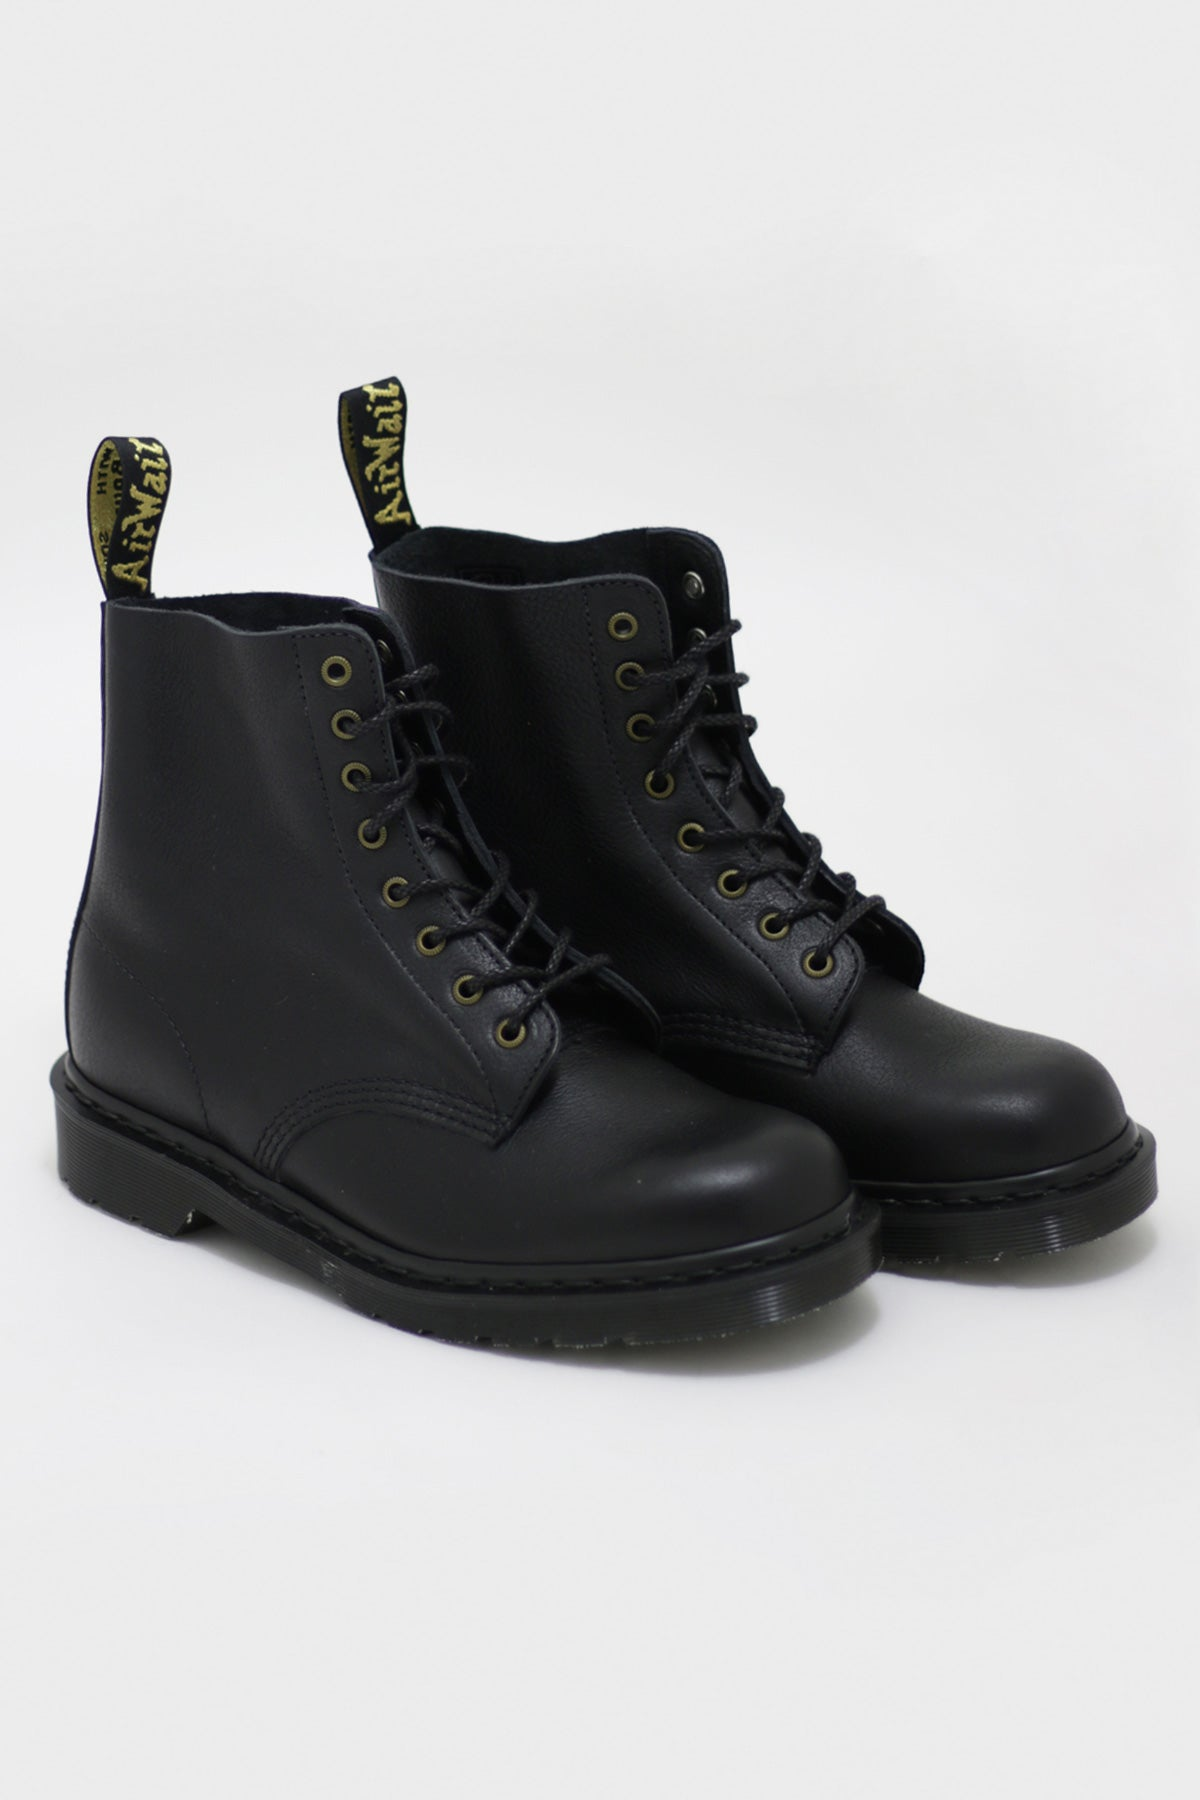 Dr. Martens - 1460 Pascal Culatta Full Grain - Black - Canoe Club